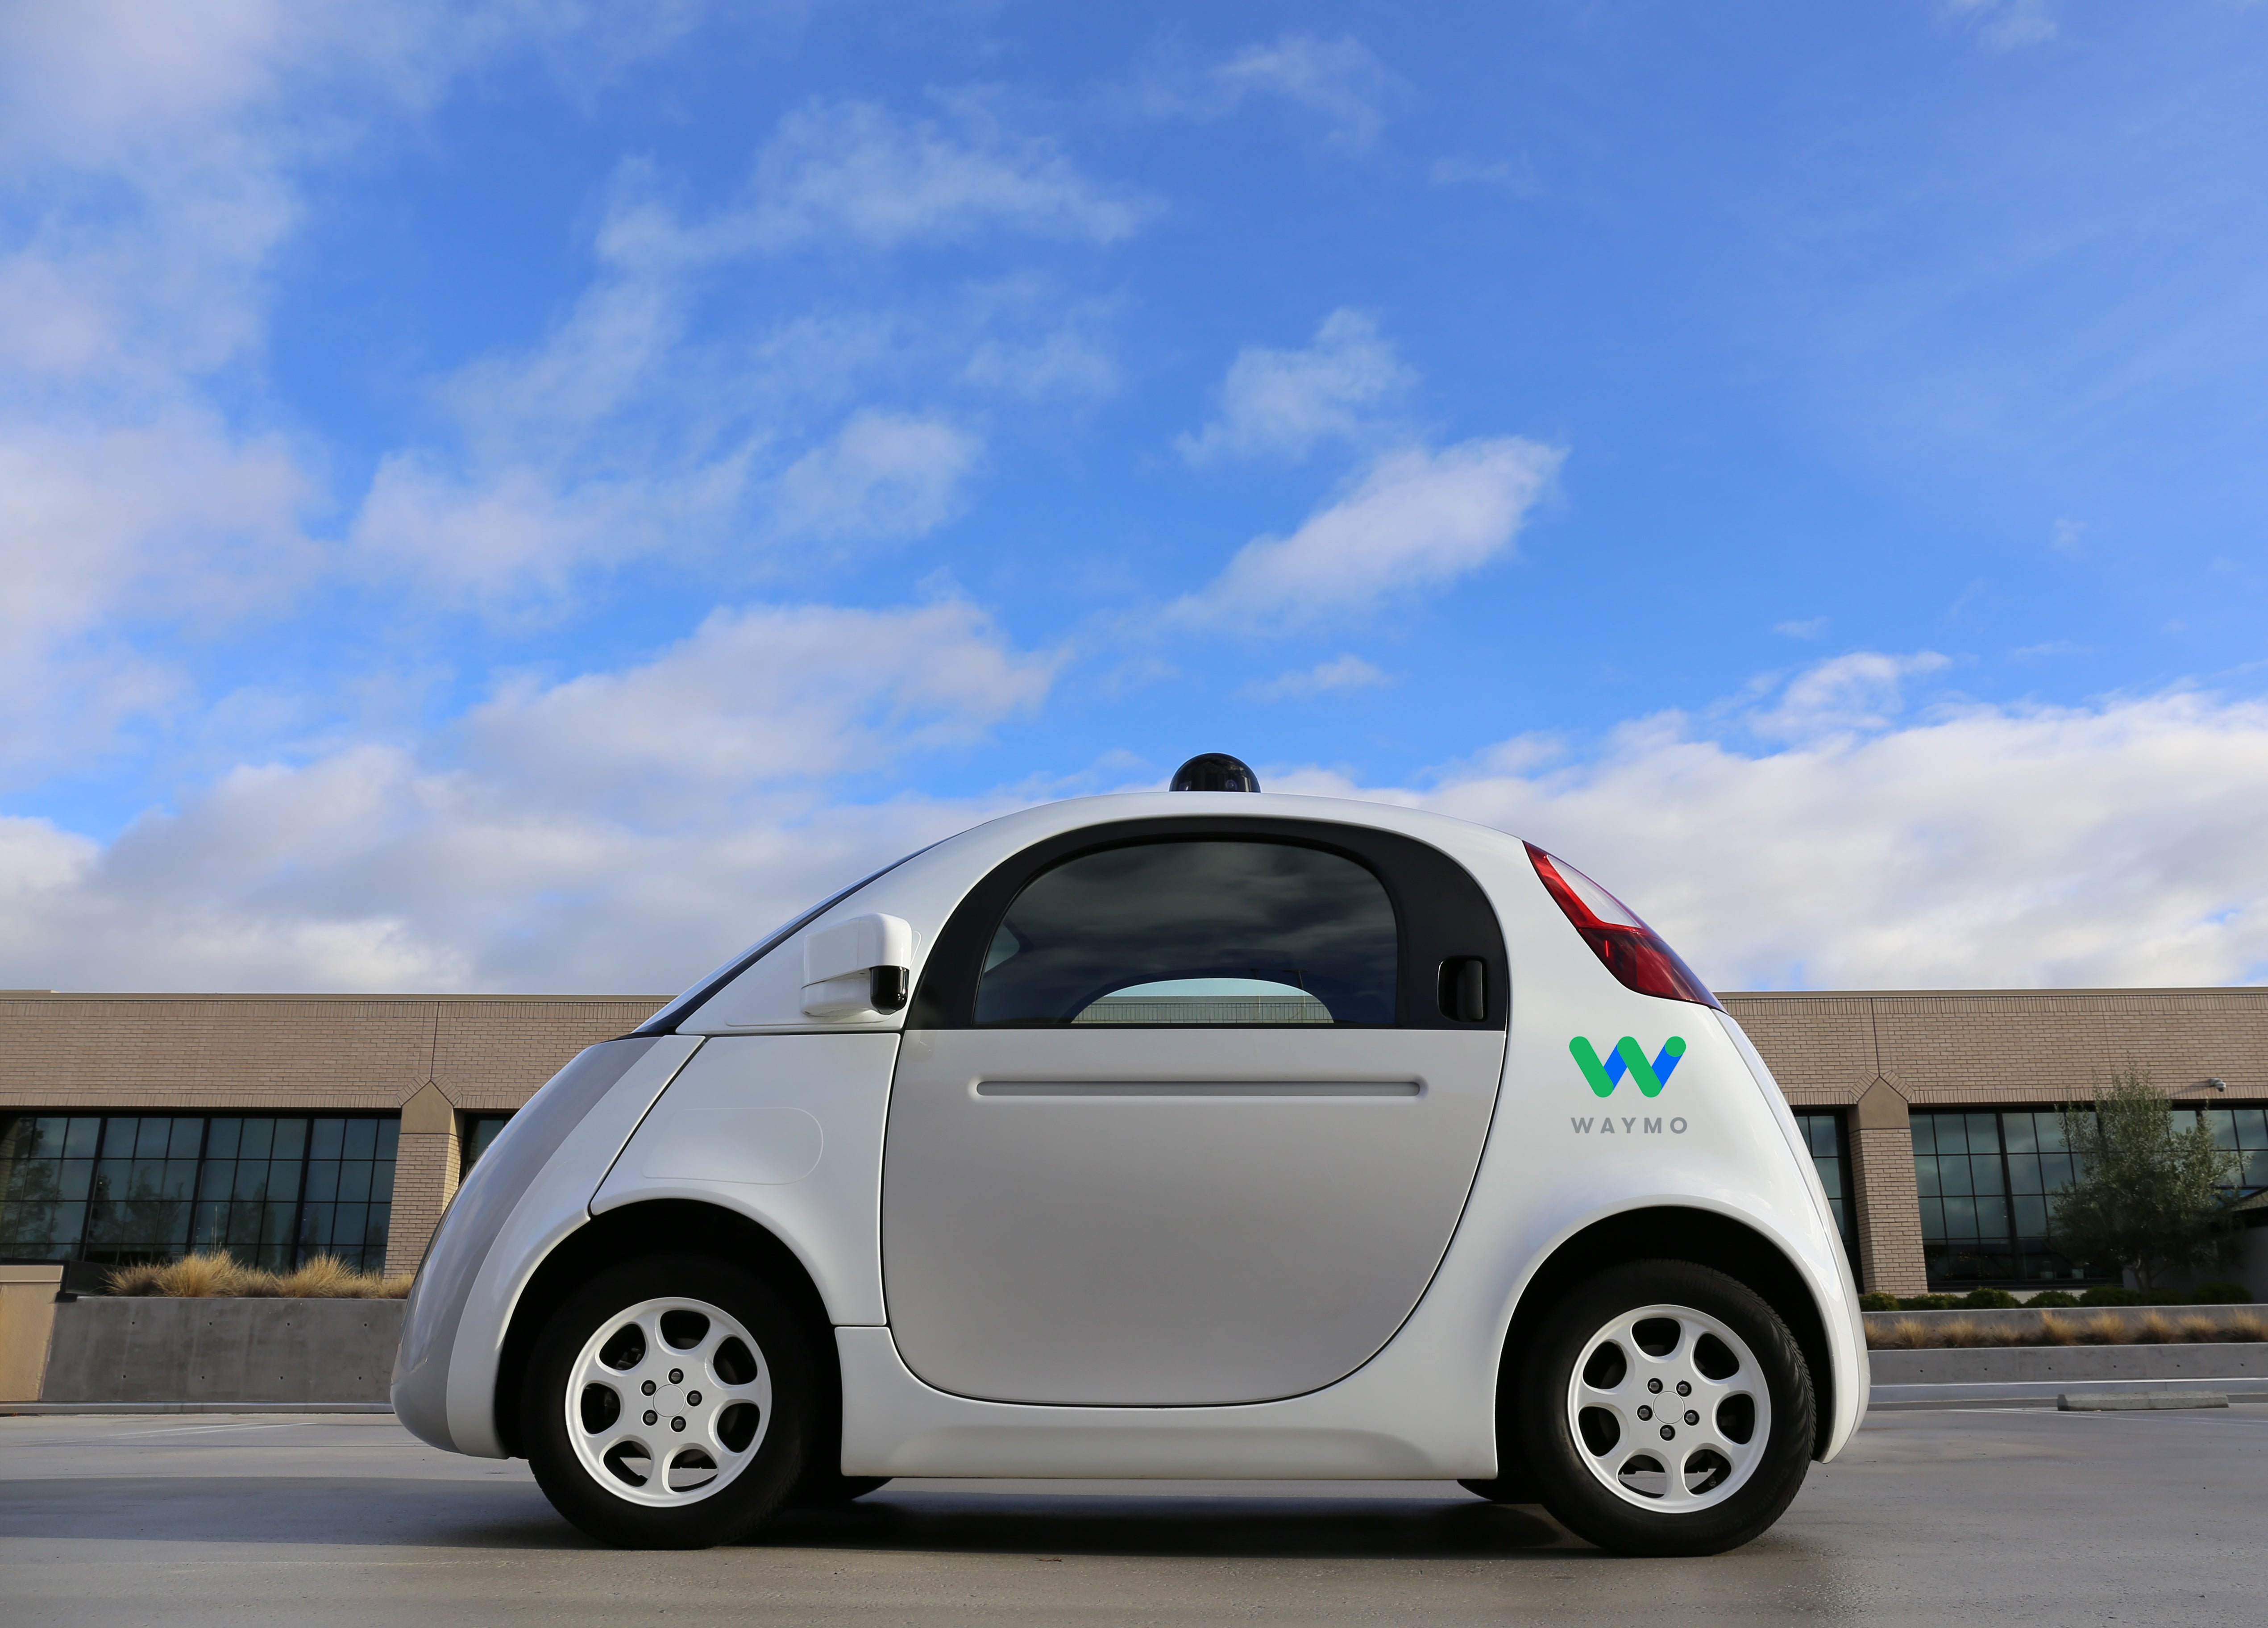 How Far Along Is Self-Driving Car Technology, Really? | The